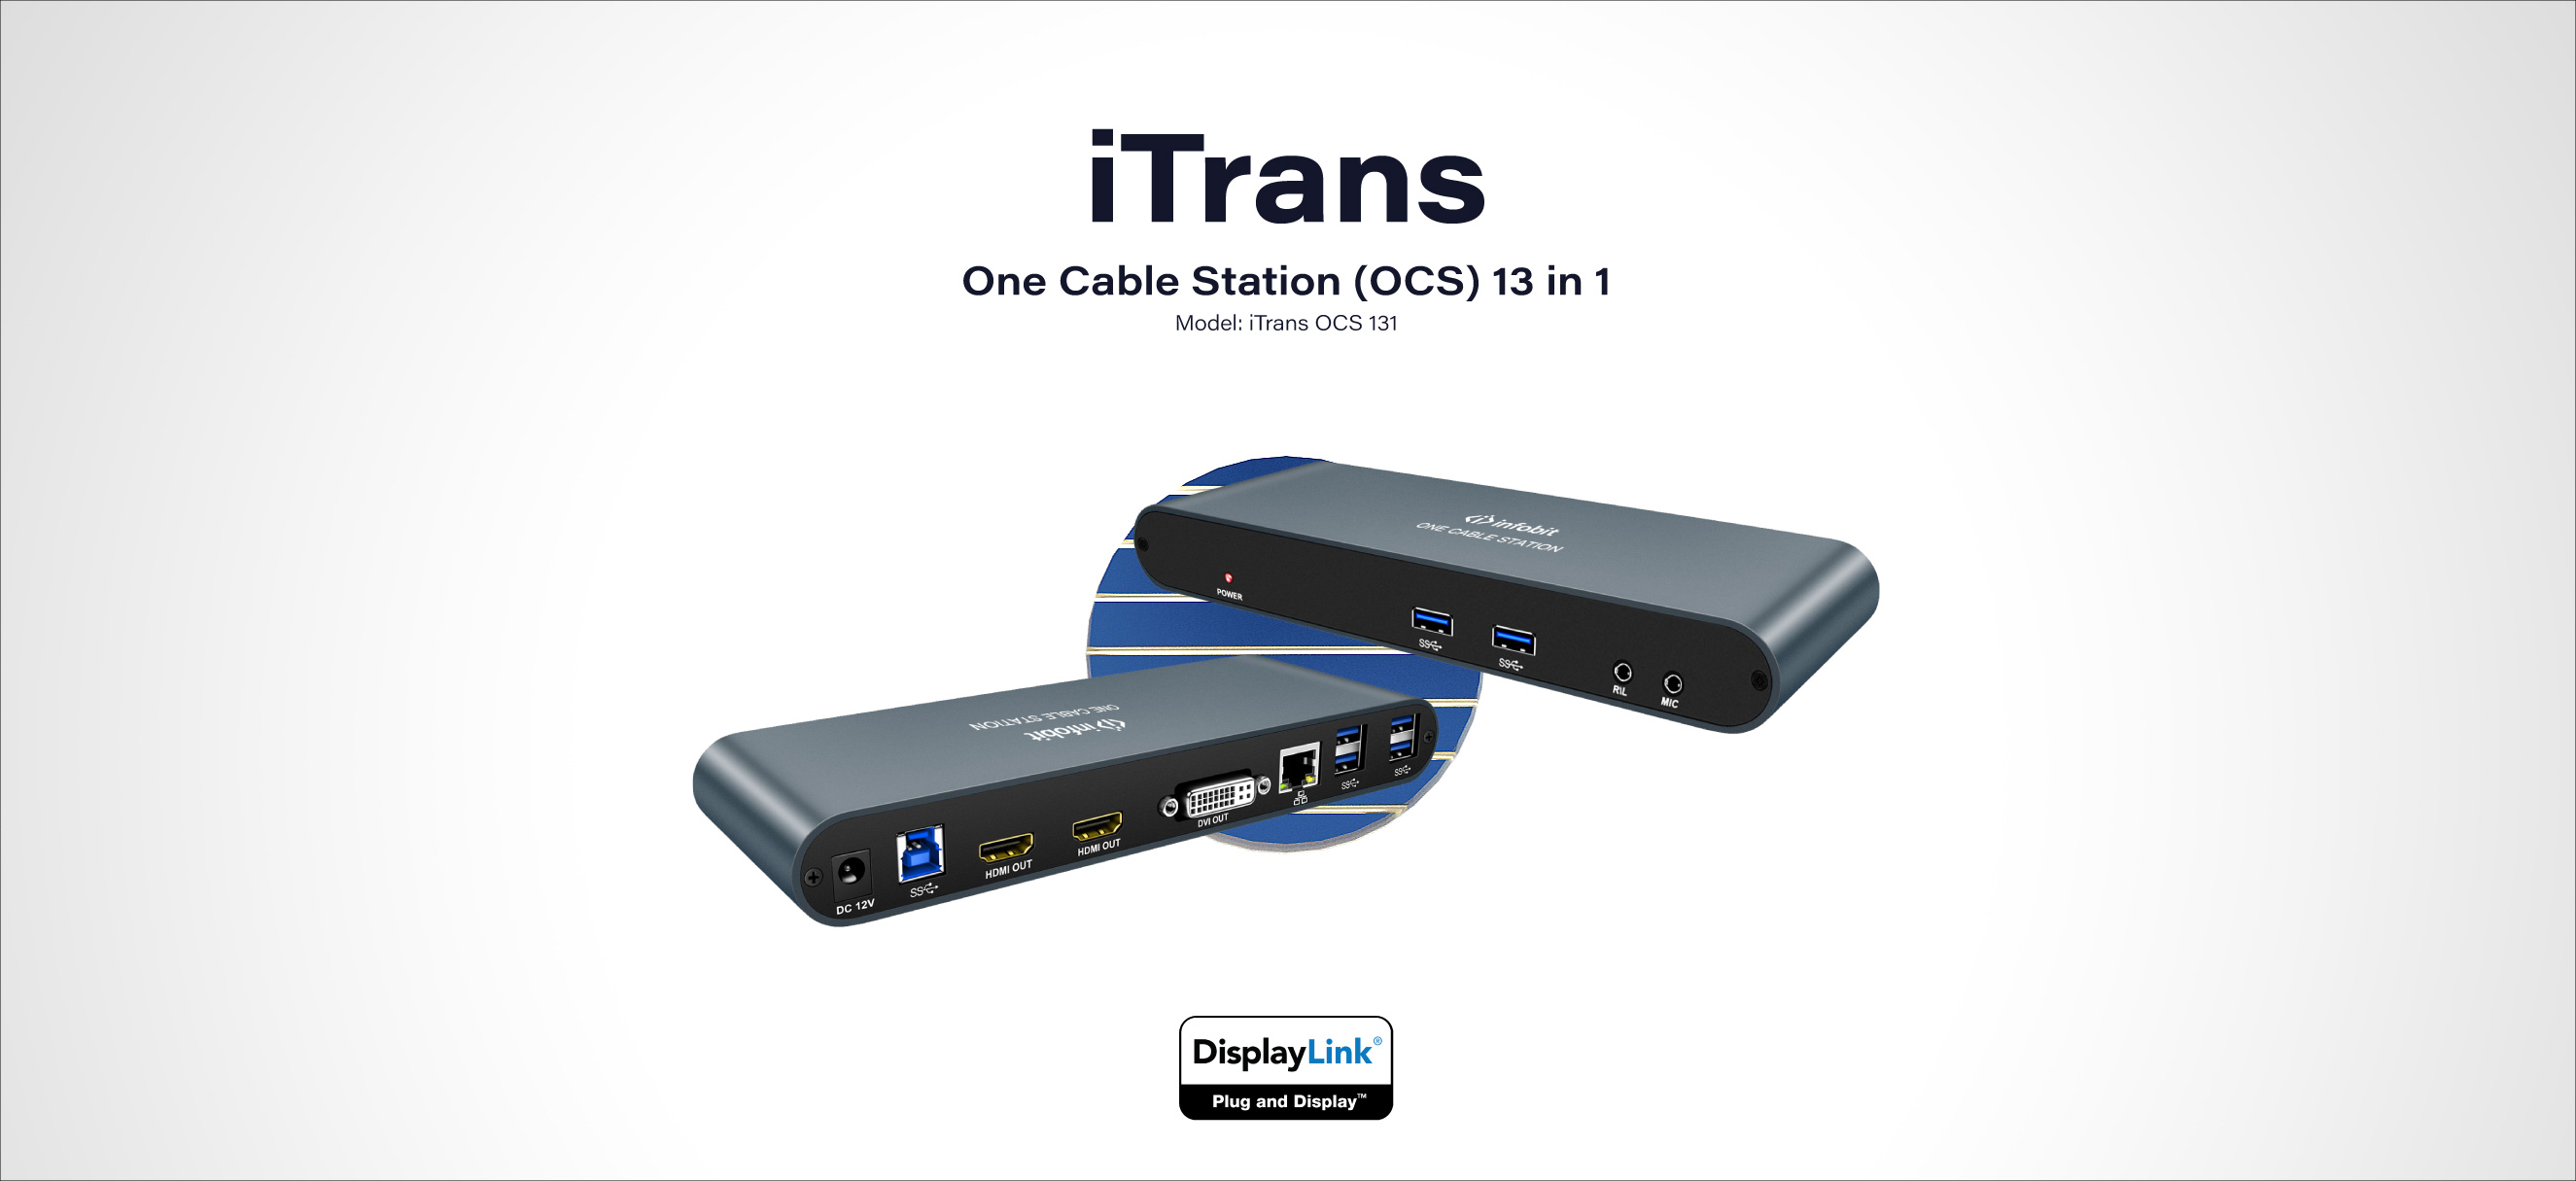 iTrans OCS 131 One Cable Station 13 in 1